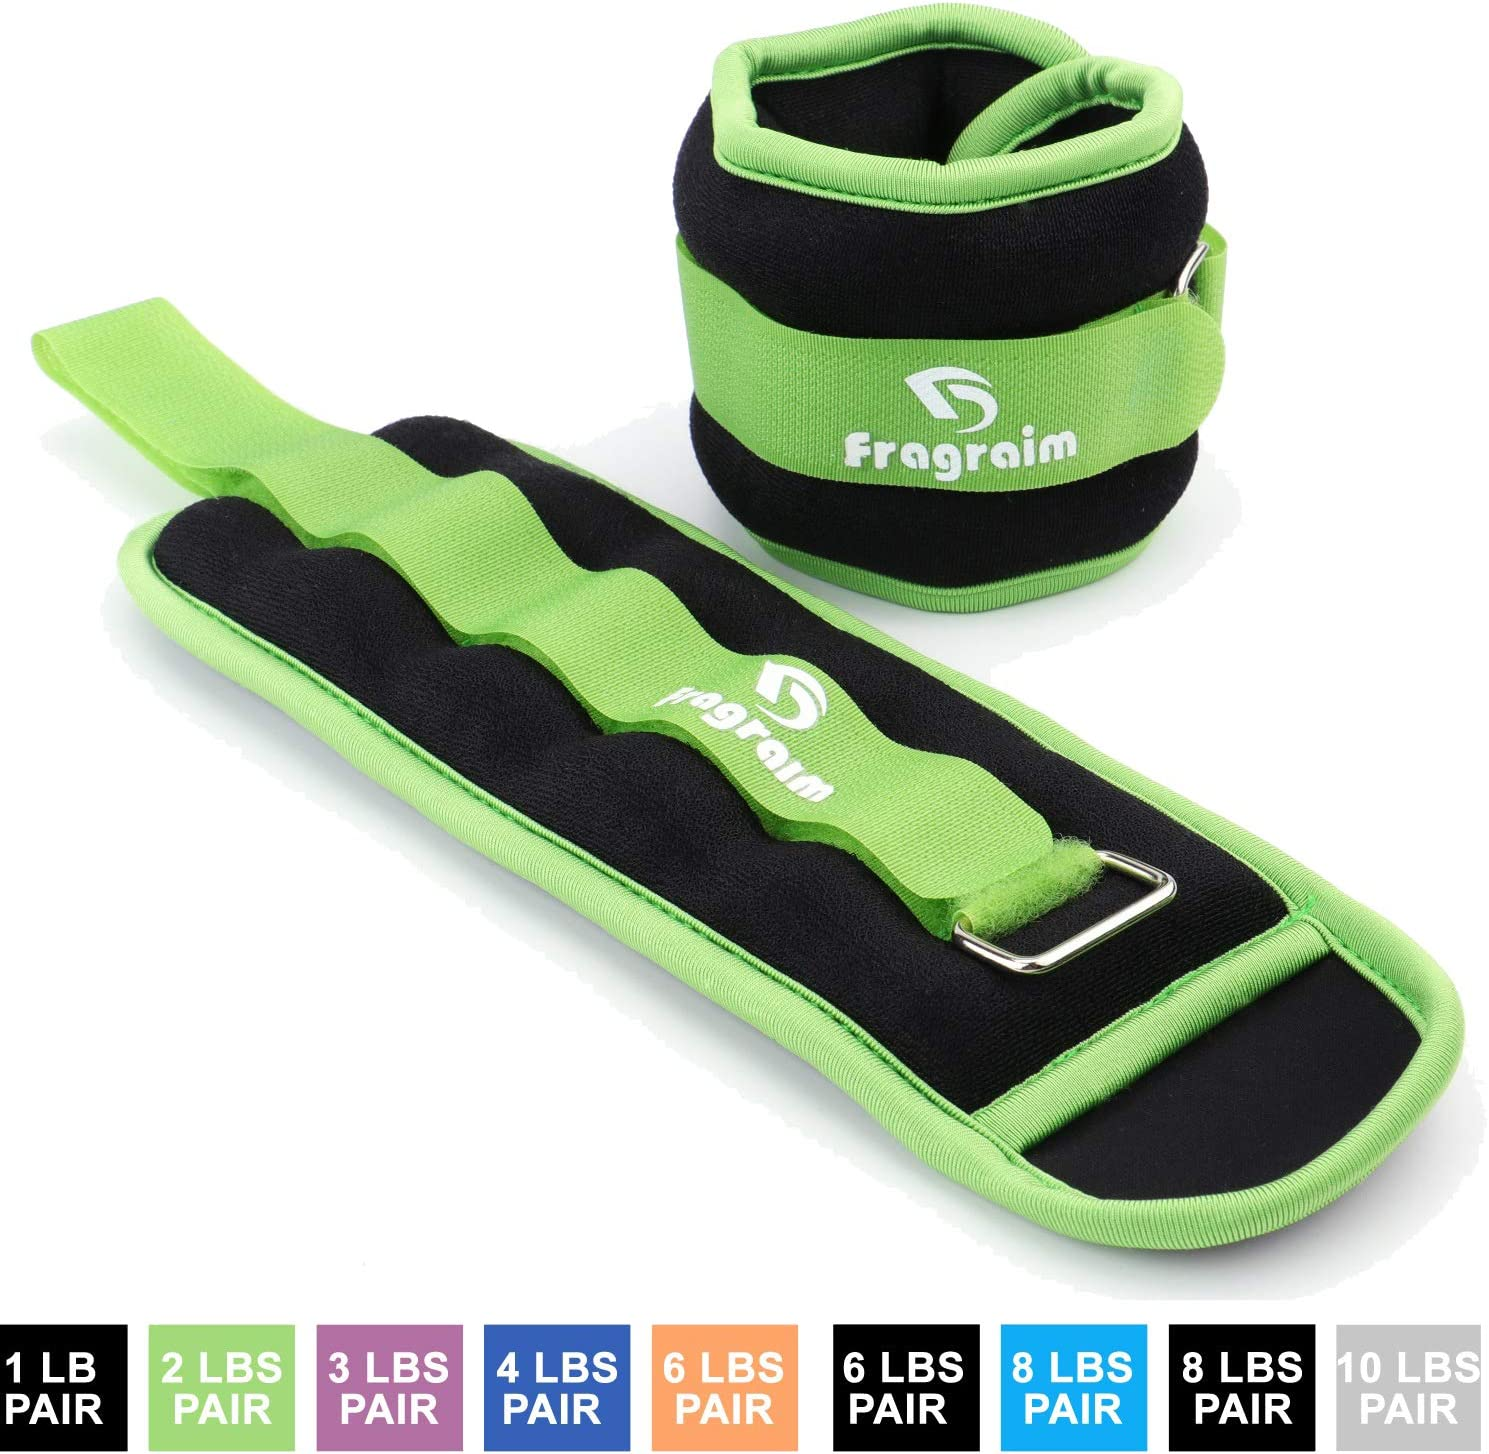 Fragraim Ankle Weights for Women, Men and Kids – Strength Training Wrist Leg Arm Weight Set with Adjustable Strap for Jogging, Gymnastics, Aerobics, Physical Therapy from 1lb to 10lbs Pair